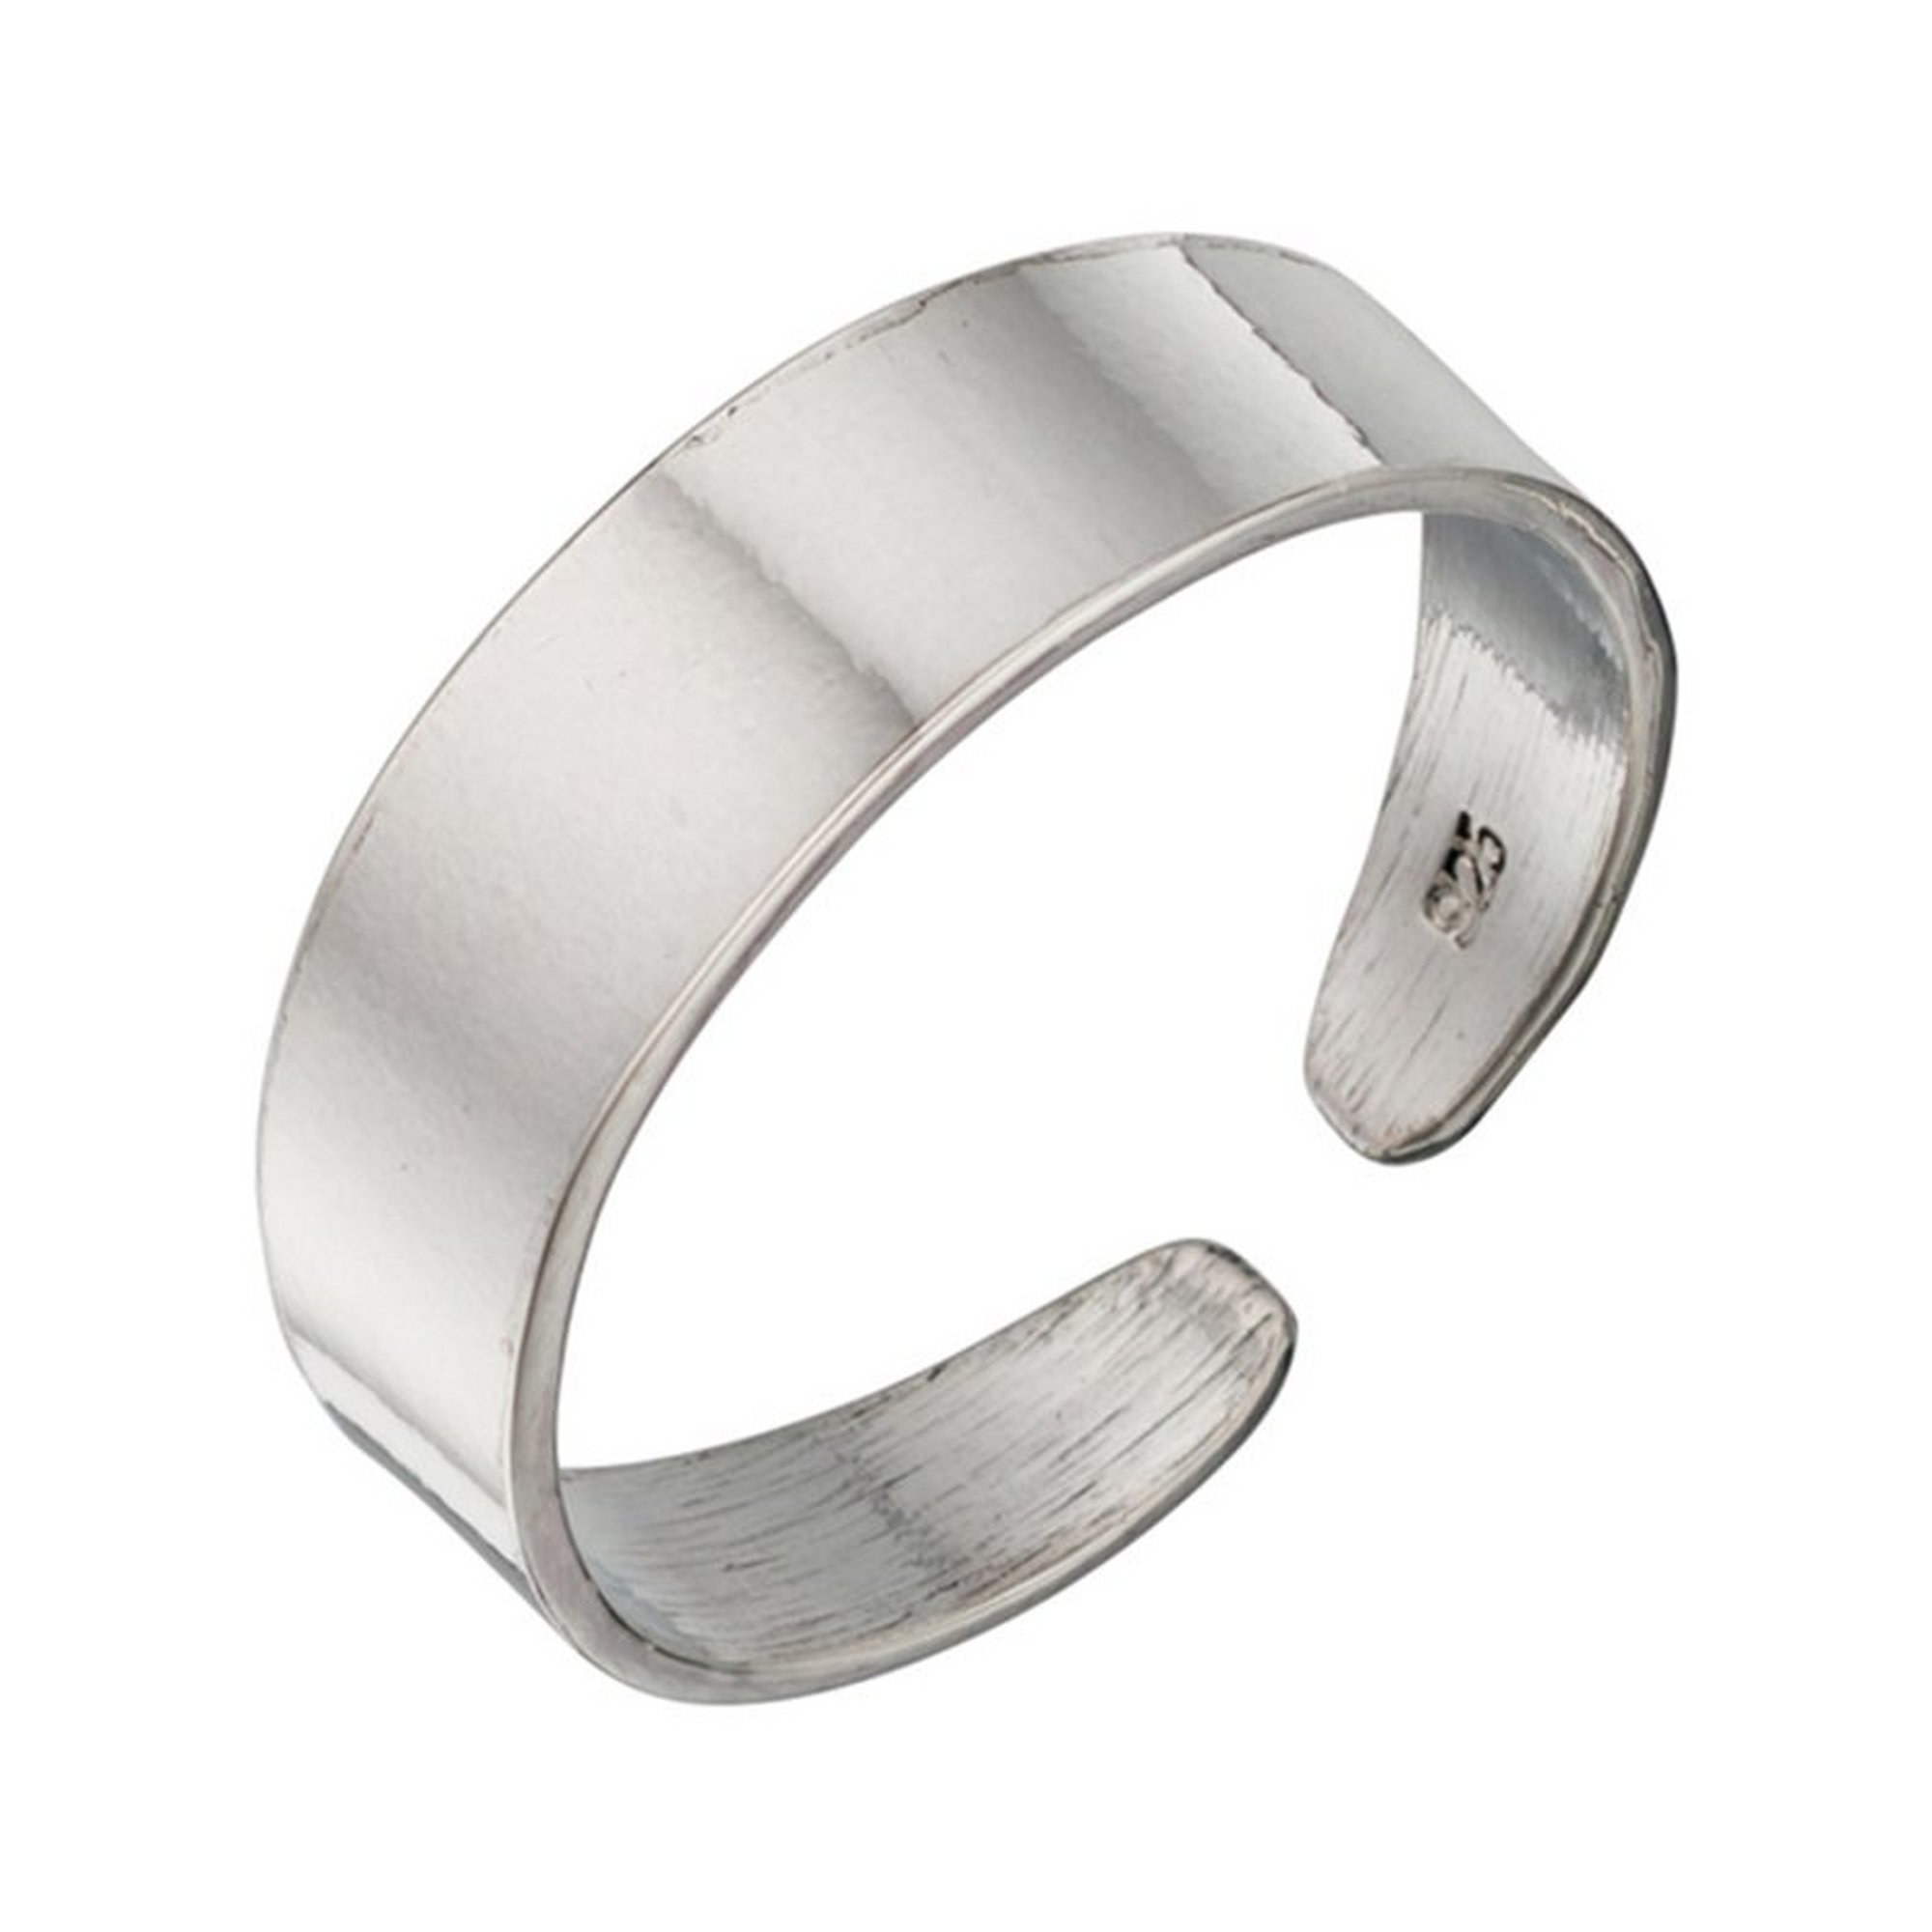 Image of Sterling Silver Adjustable Toe Ring